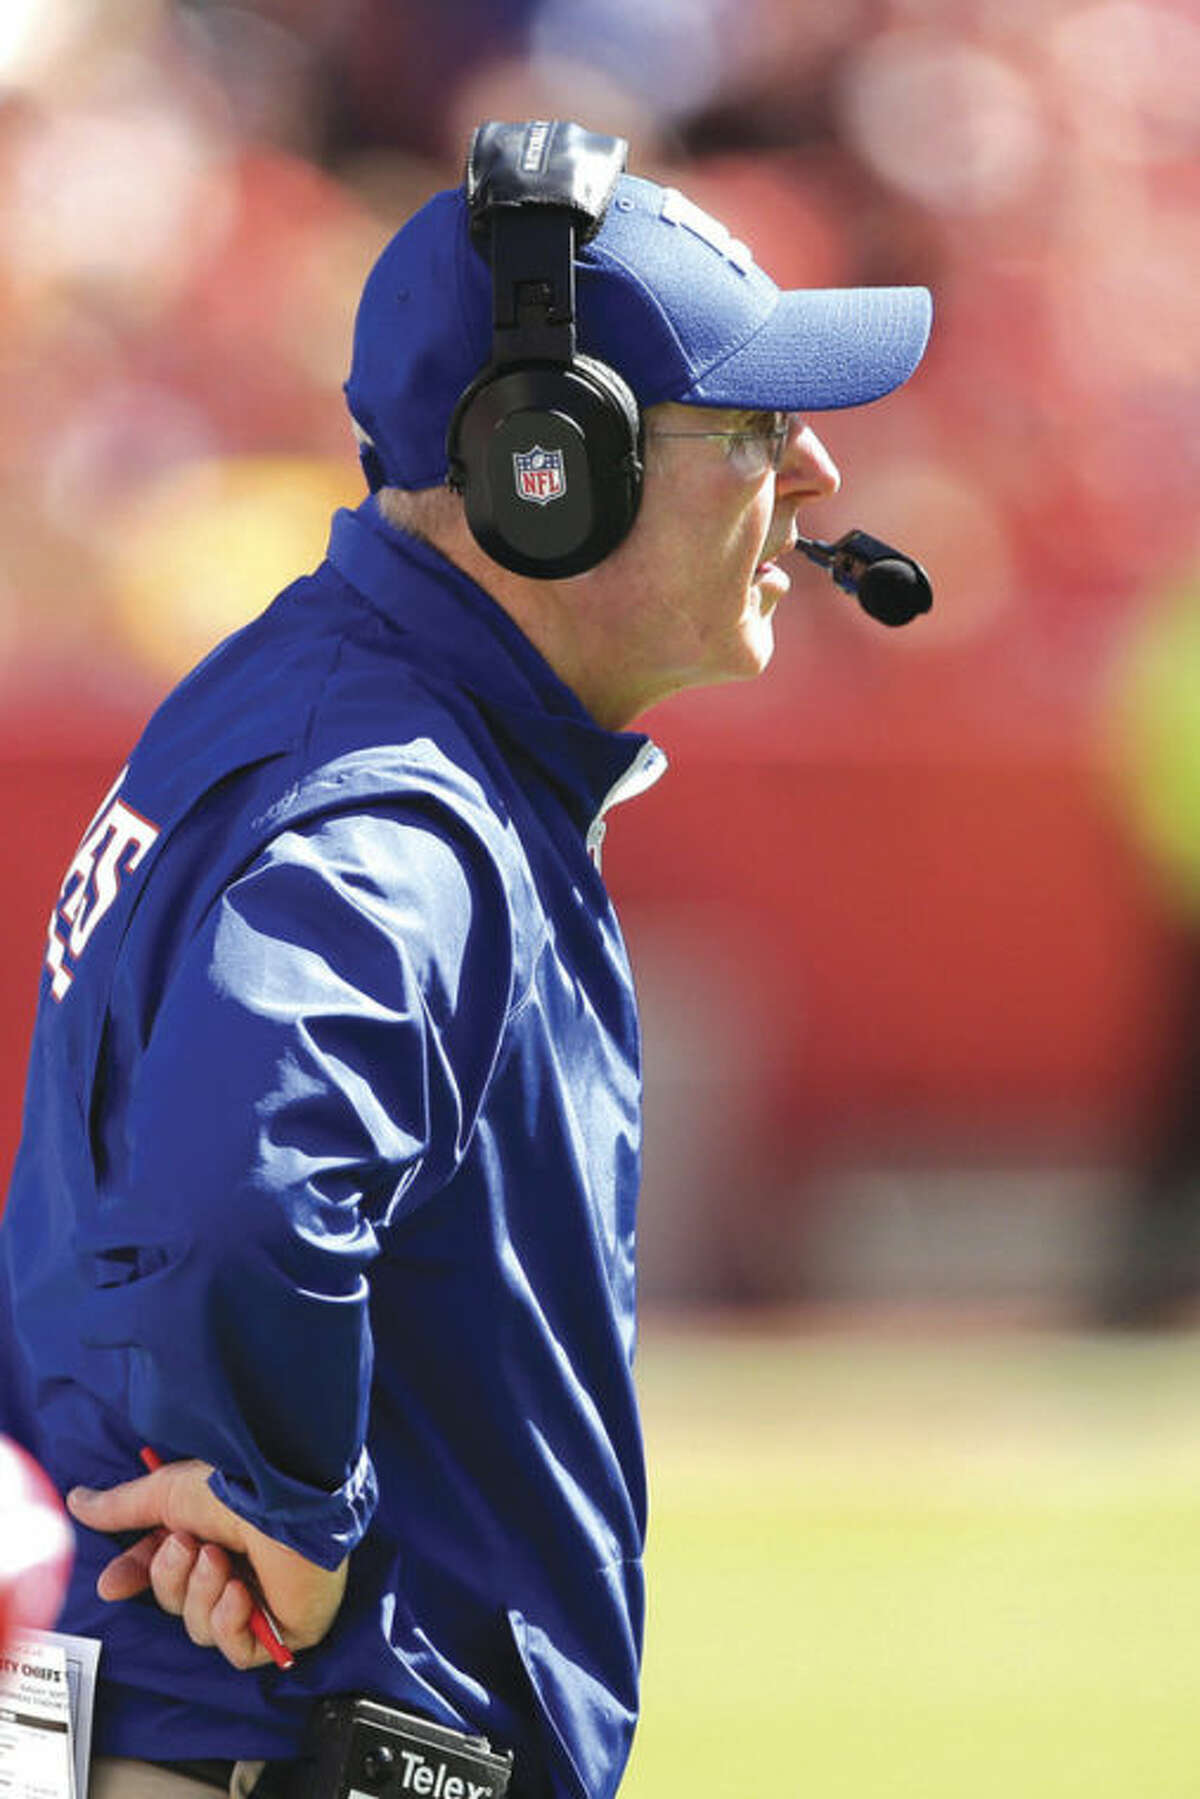 New York Giants head coach Tom Coughlin watches during the second half of an NFL football game against the Kansas City Chiefs at Arrowhead Stadium in Kansas City, Mo., Sunday, Sept. 29, 2013. (AP Photo/Charlie Riedel)